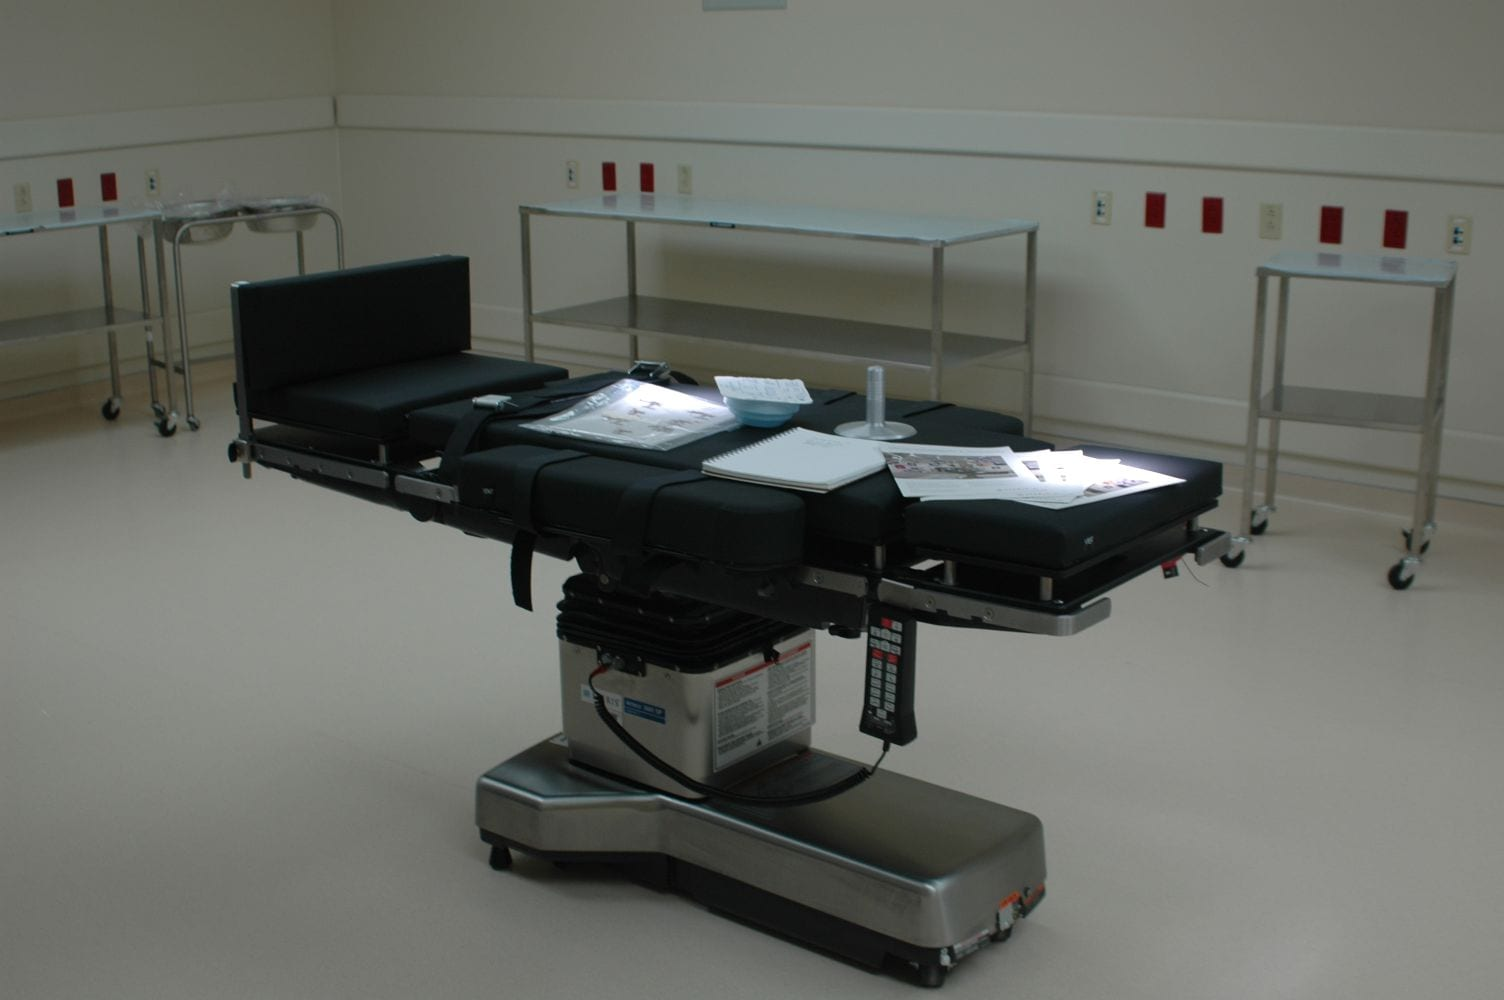 Operating chair with papers on top